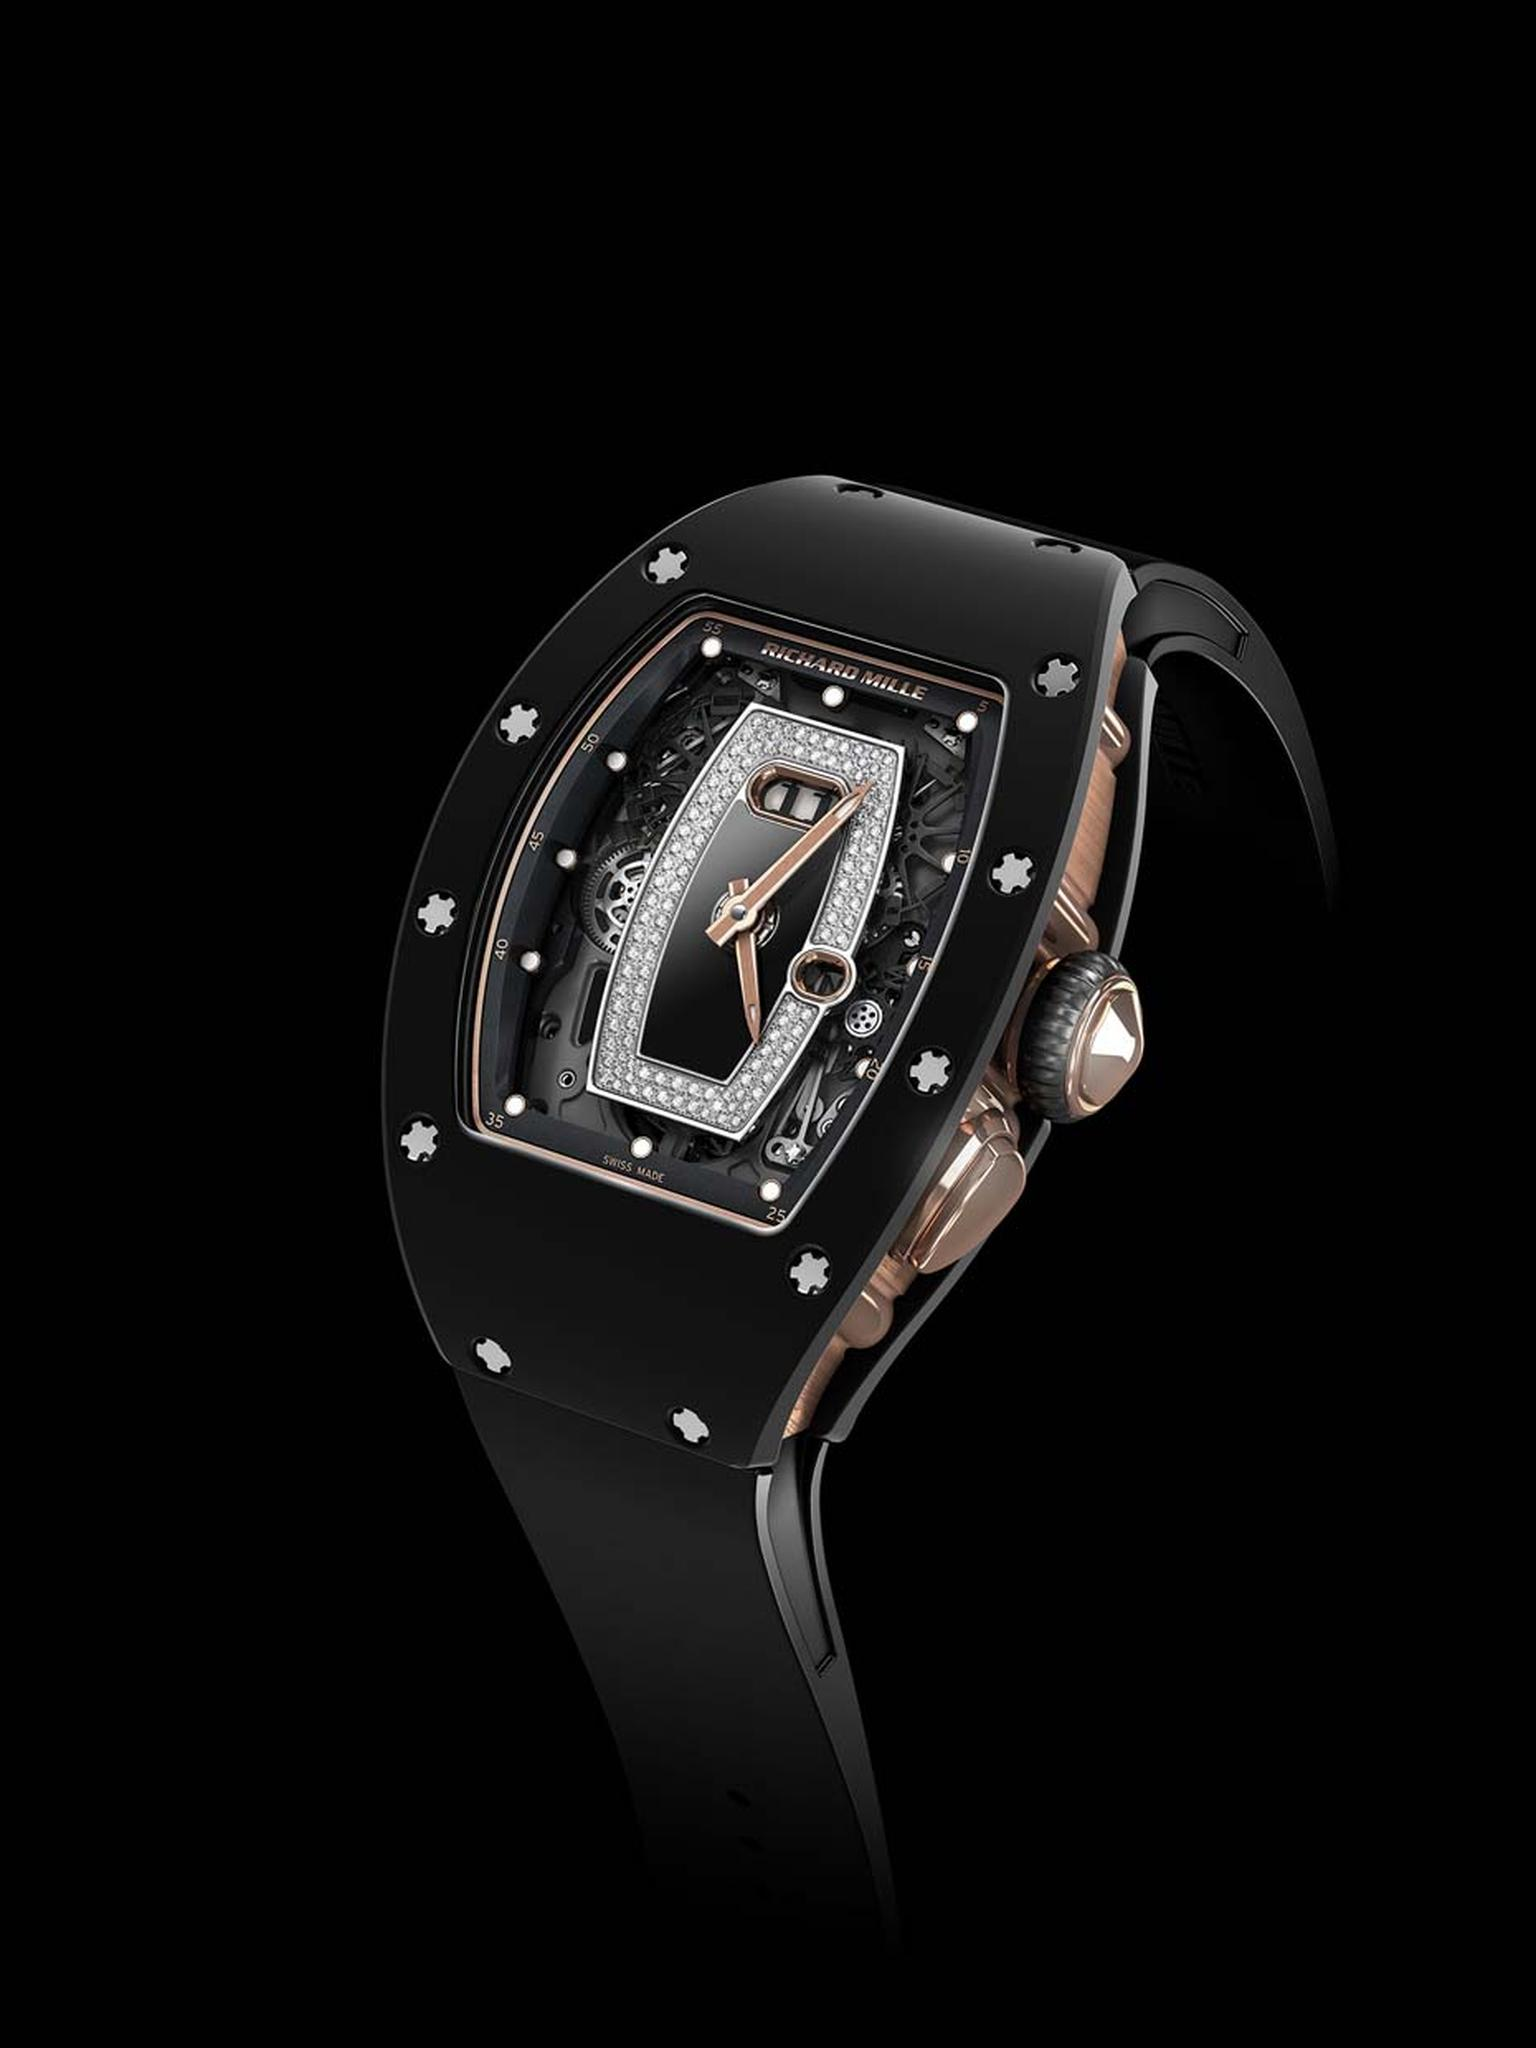 Richard Mille RM 037 in TZP black ceramic